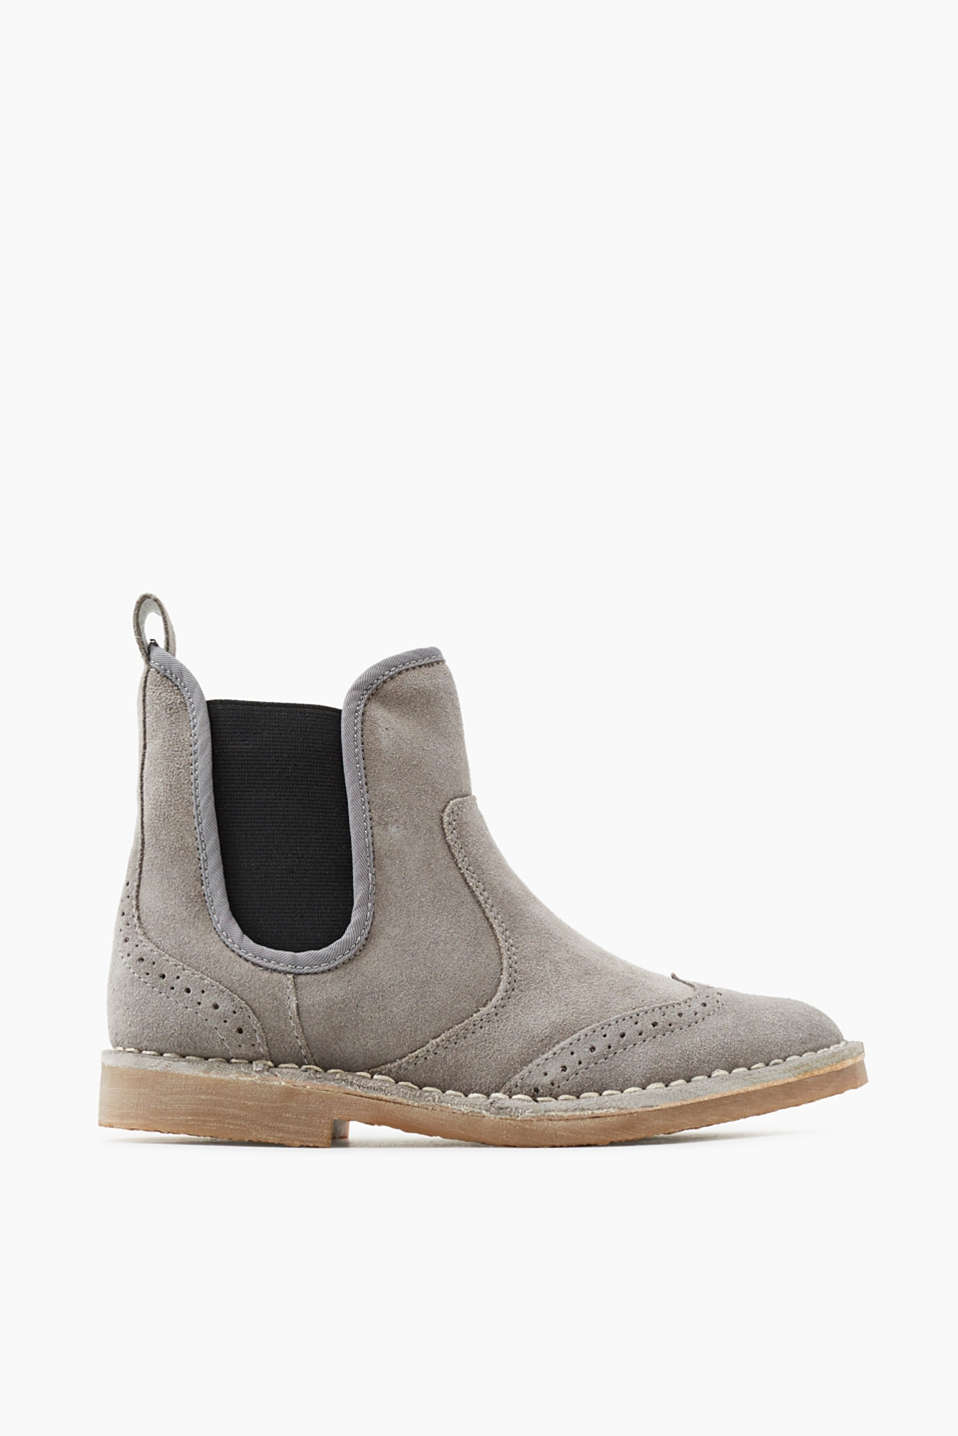 Smart look, cosy comfort: Chelsea boots with a brogue pattern, faux fur lining and robust crepe sole